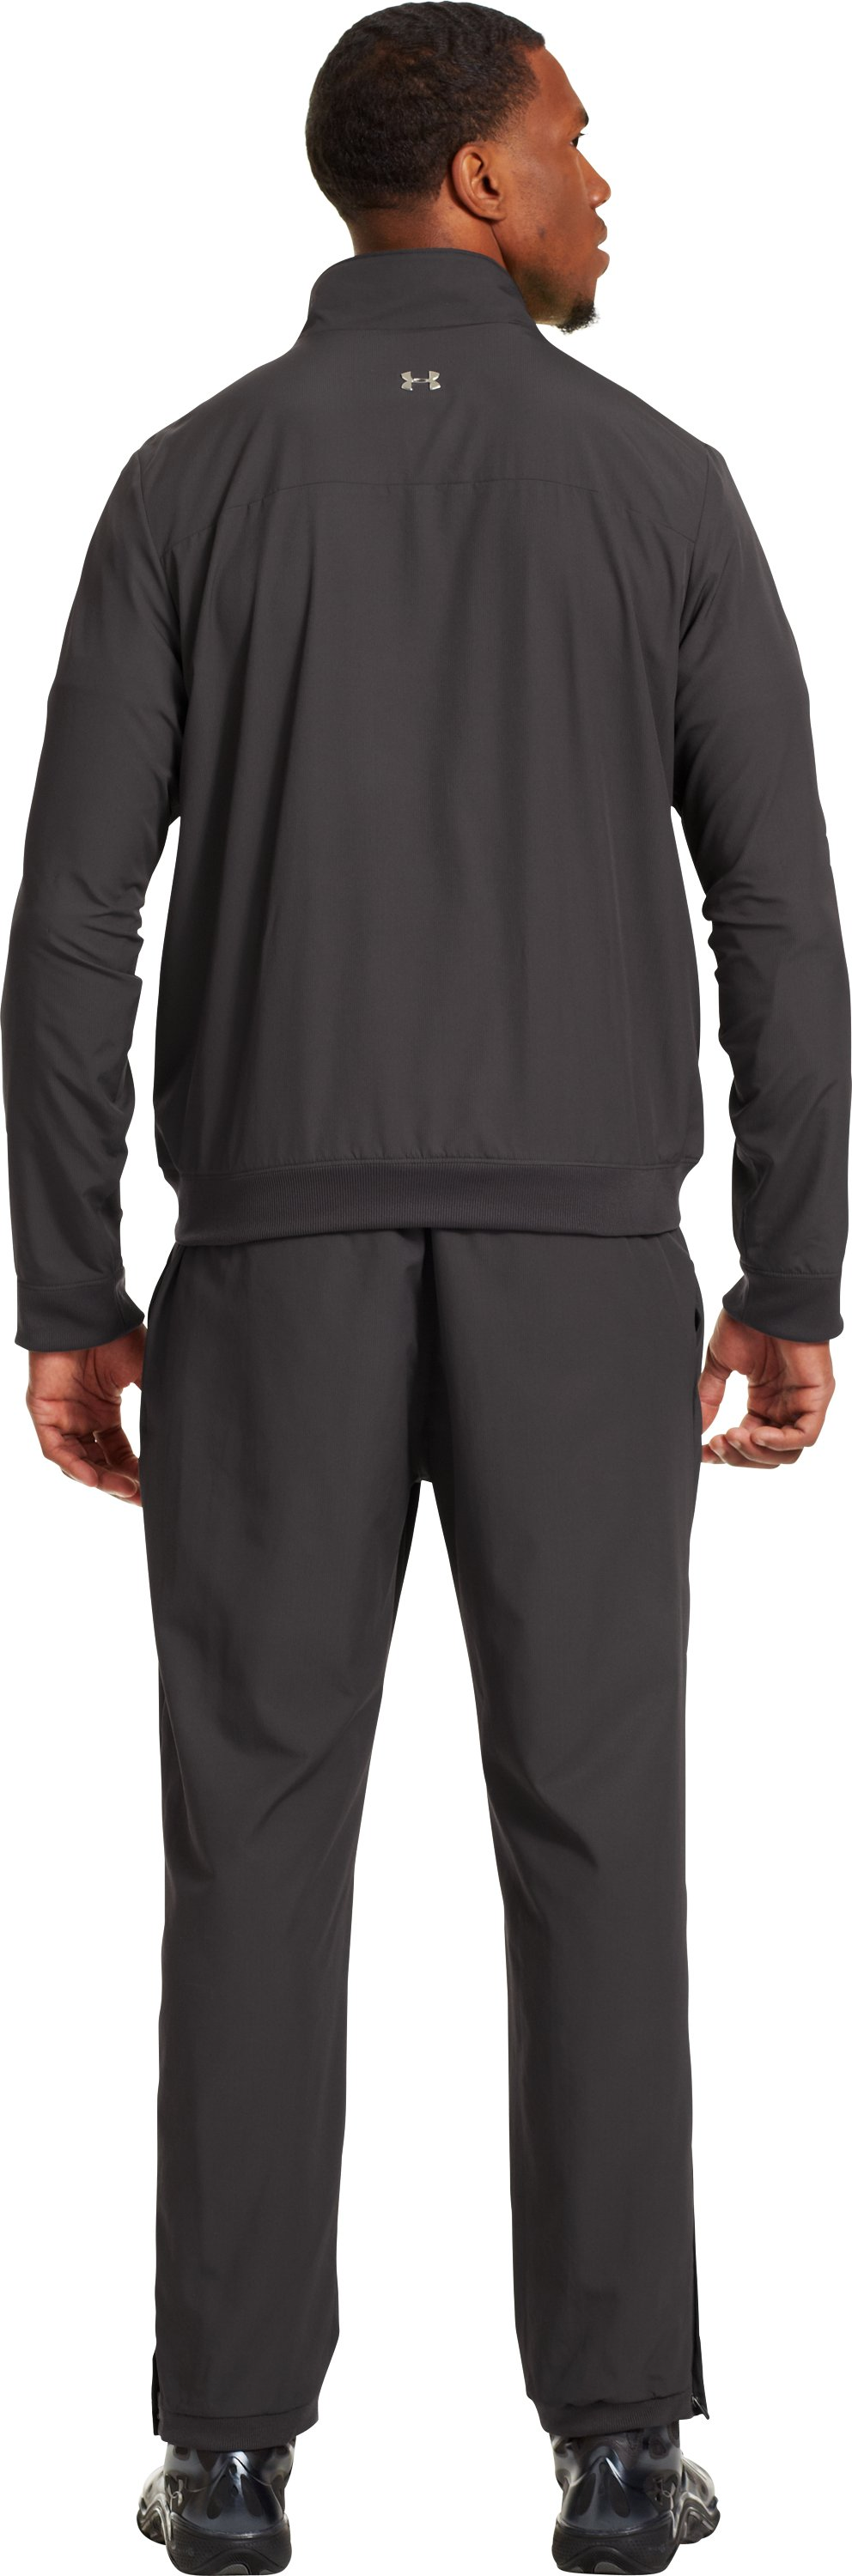 Men's C1N A.K.A. Warm-Up Pants, Charcoal, Back